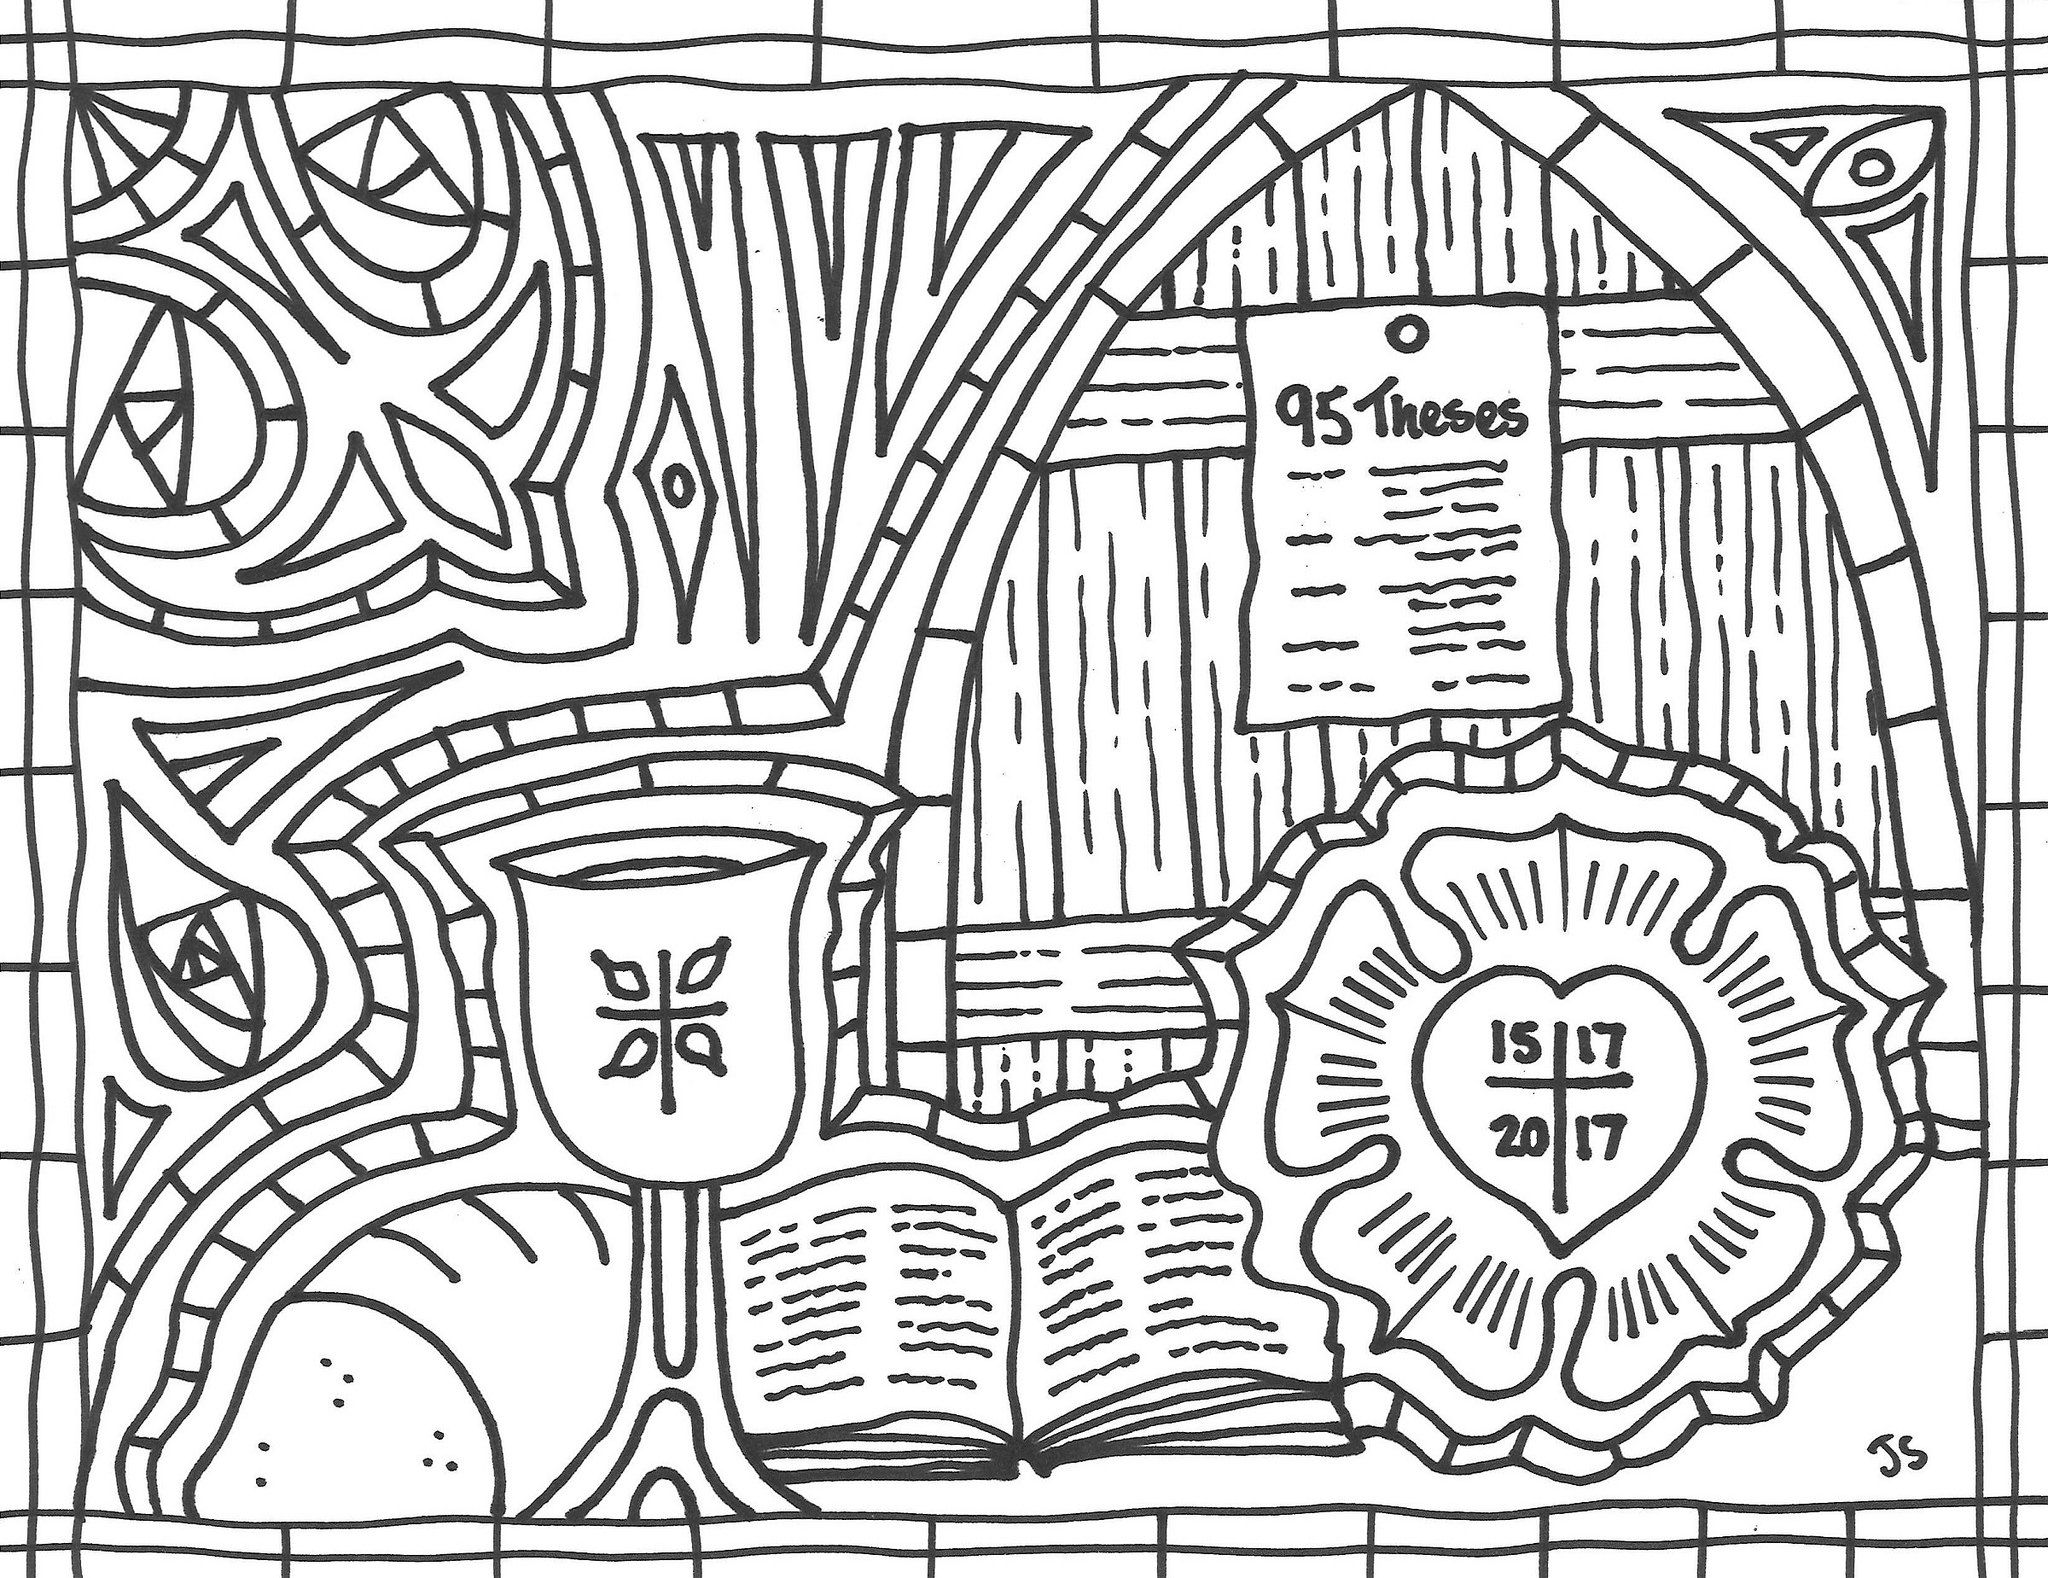 Reformation 500 Coloring Page Coloring Pages Rose Coloring